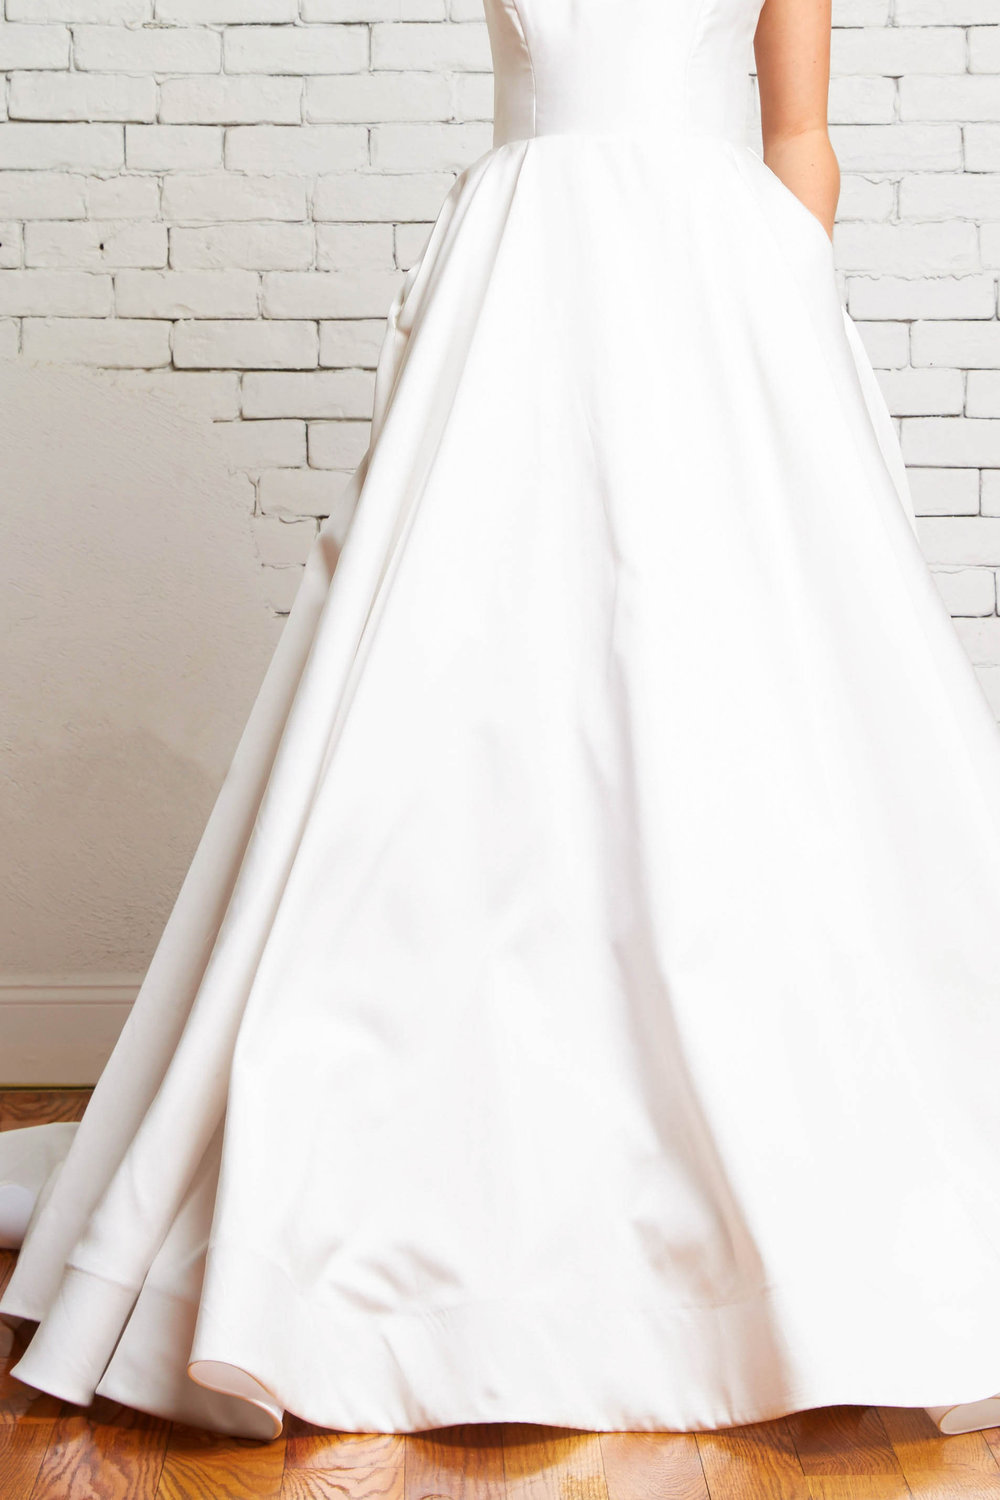 Reese Front-Rebecca Schoneveld_modern_ball_gown_simple_with_pockets_and_buttons.jpg